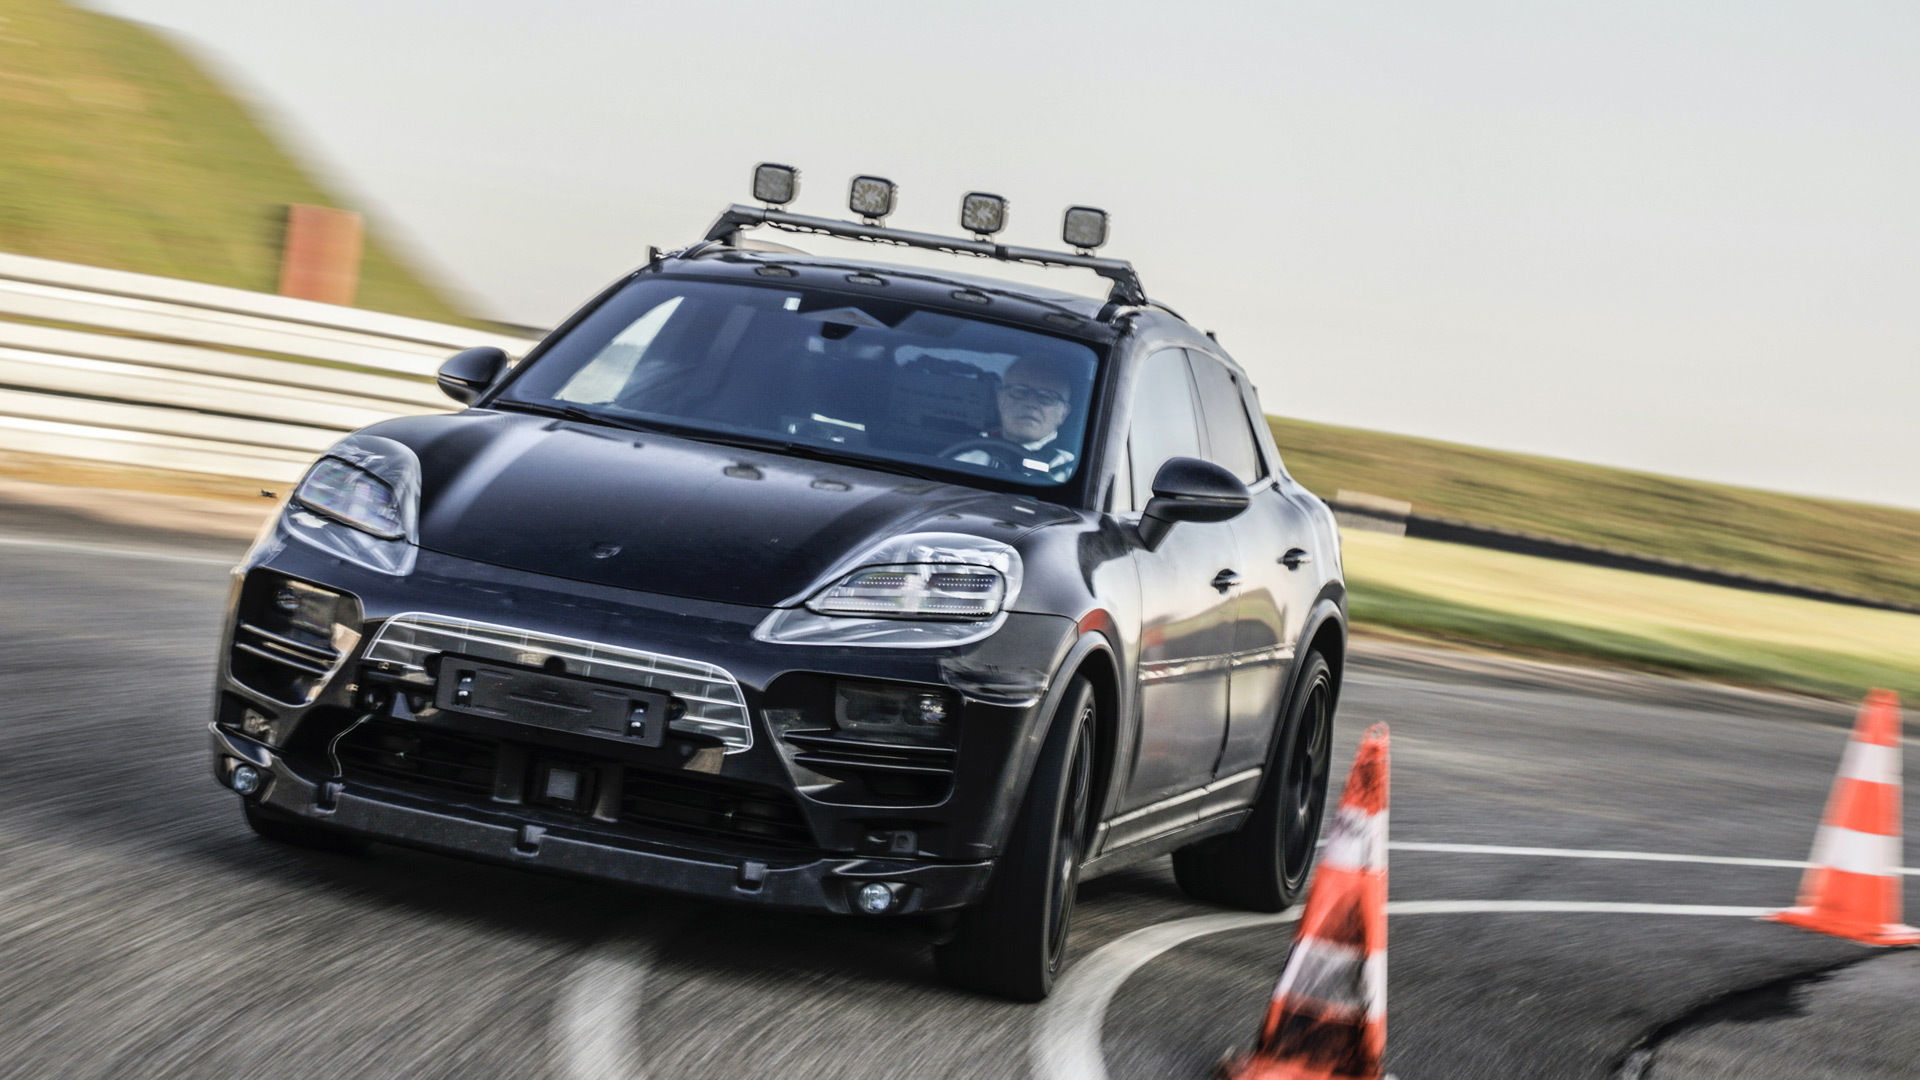 Electric Porsche Macan development